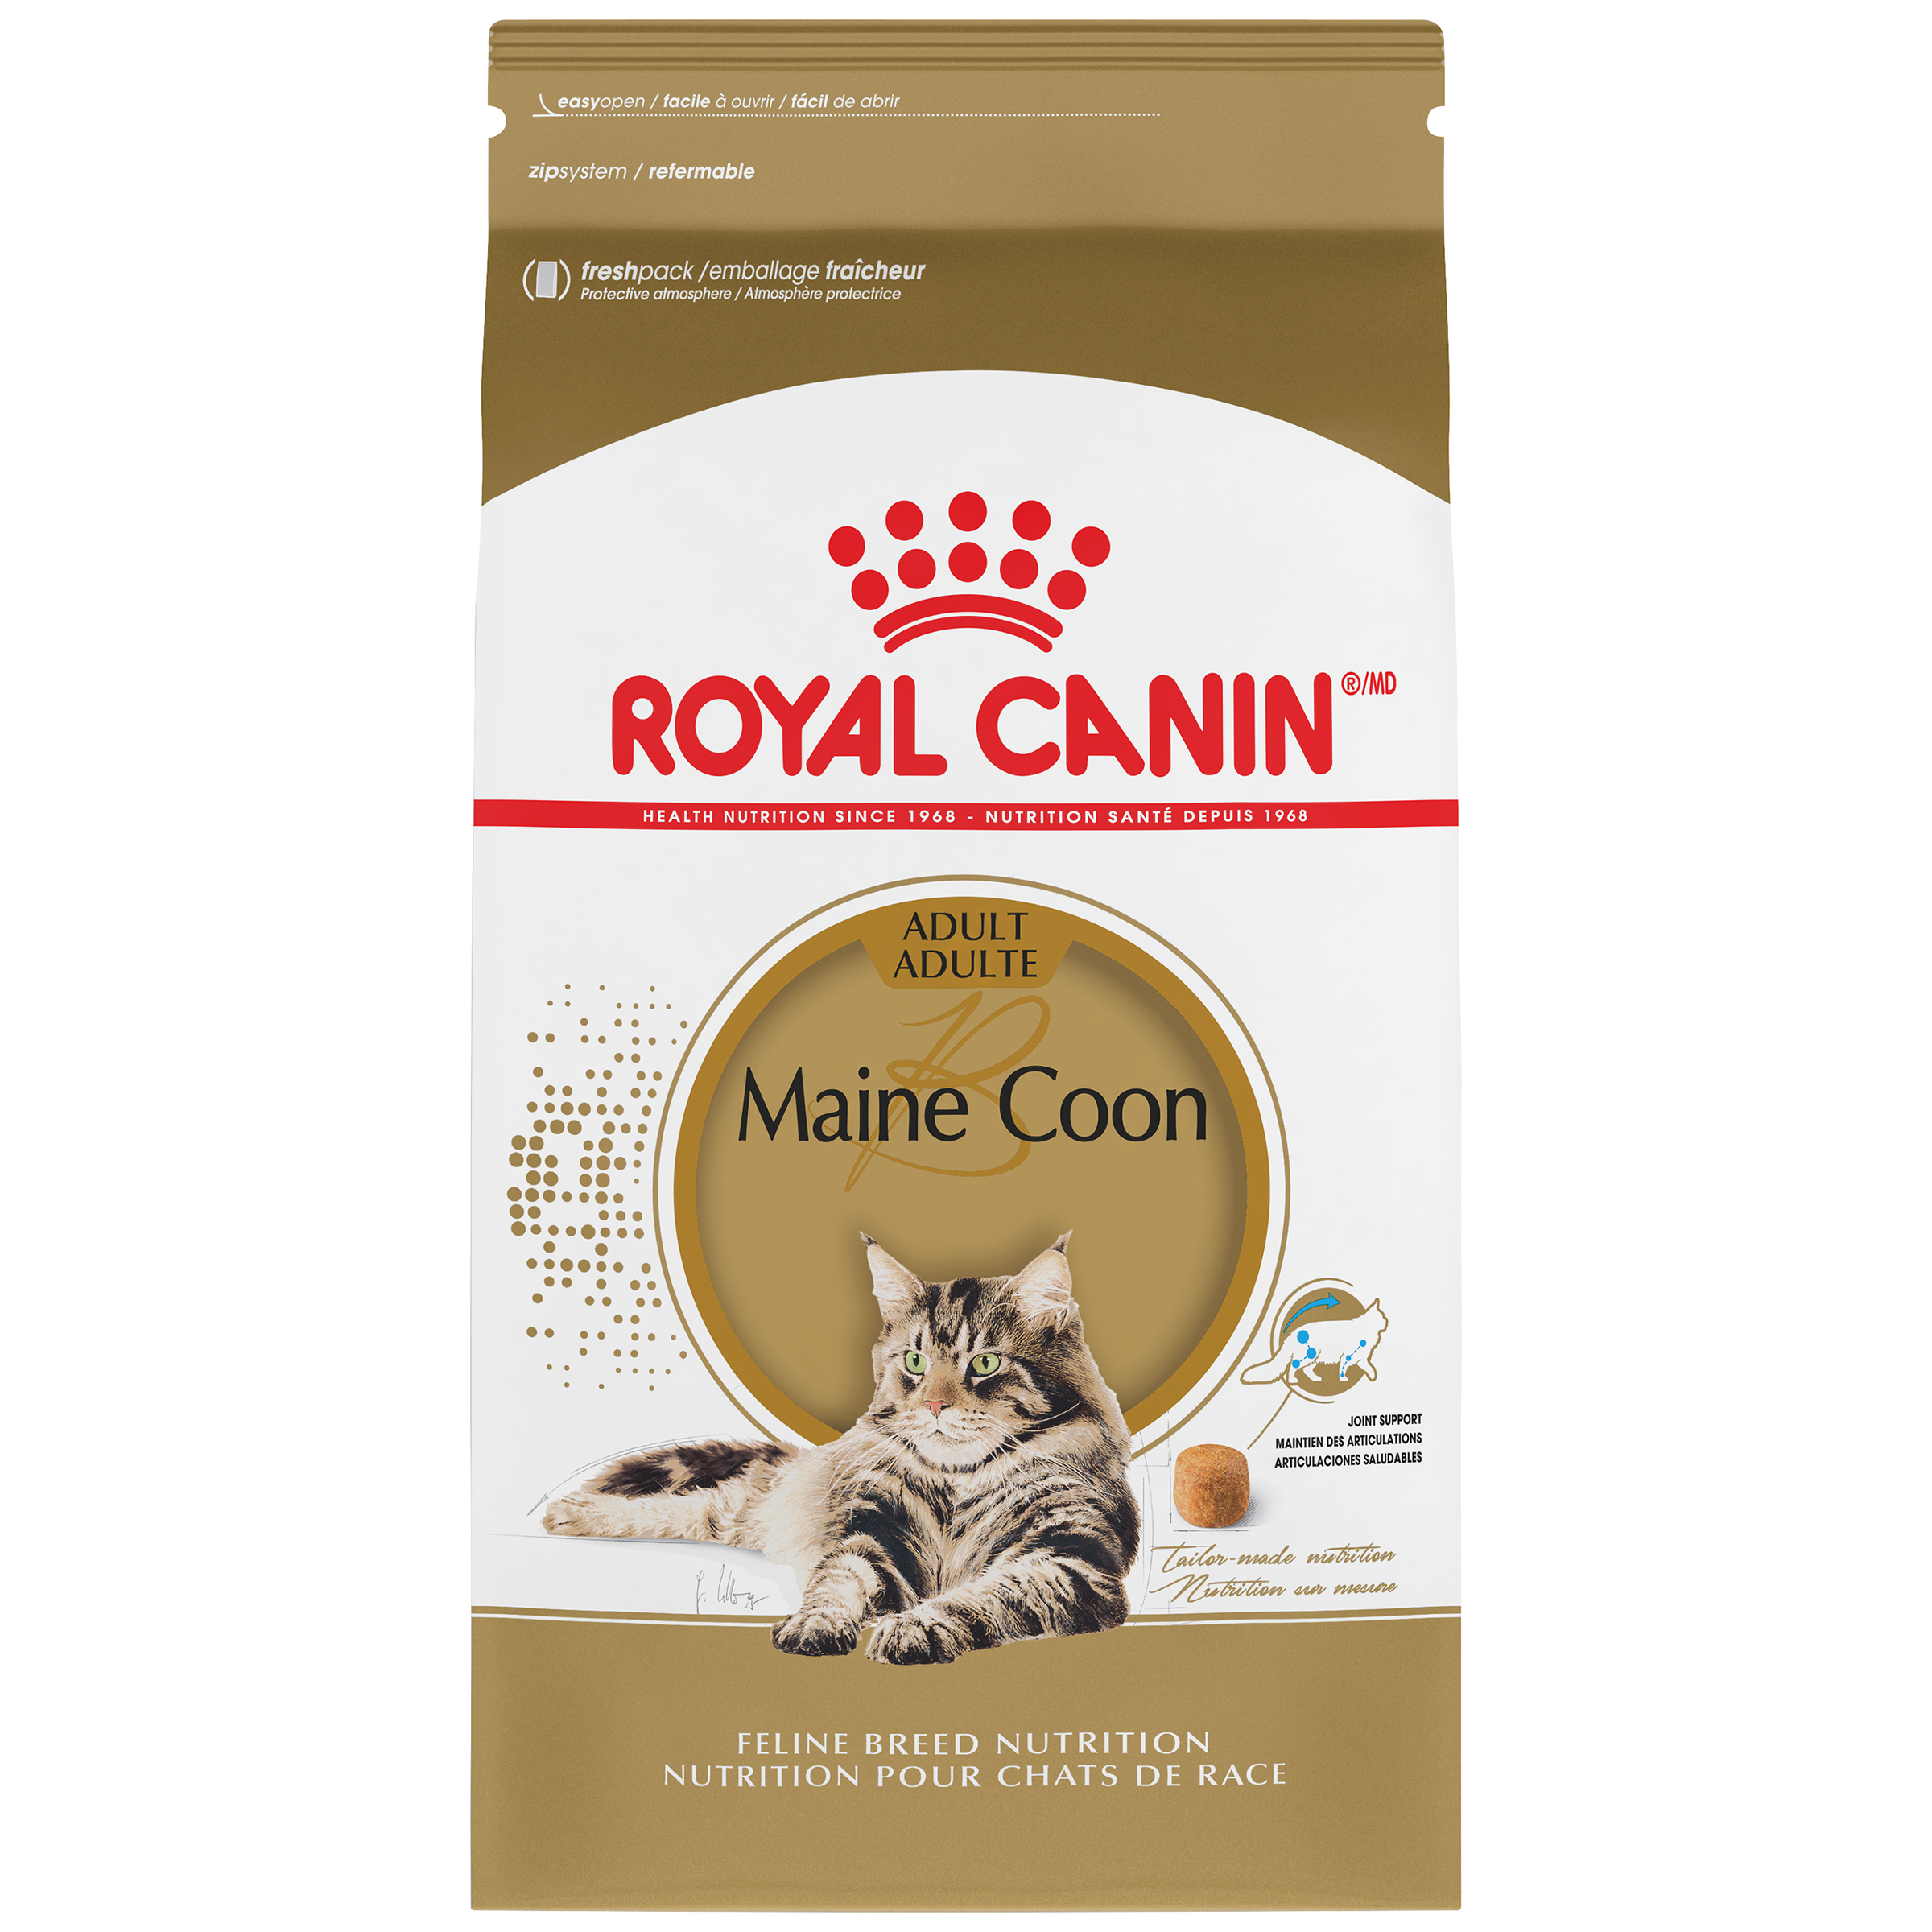 Maine Coon Dry Cat Food